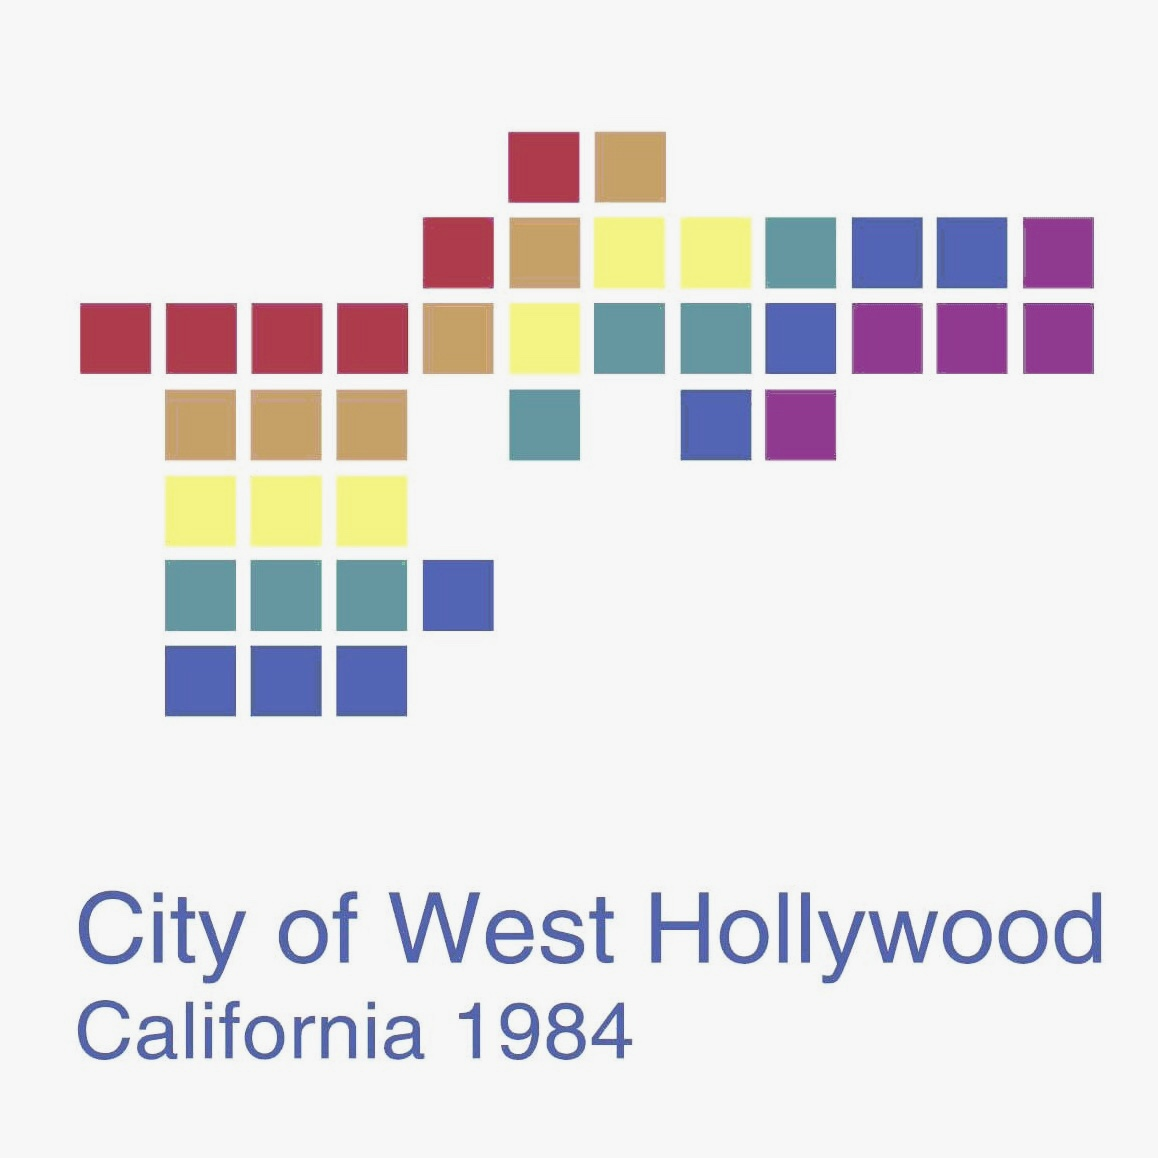 City of West Holltwood